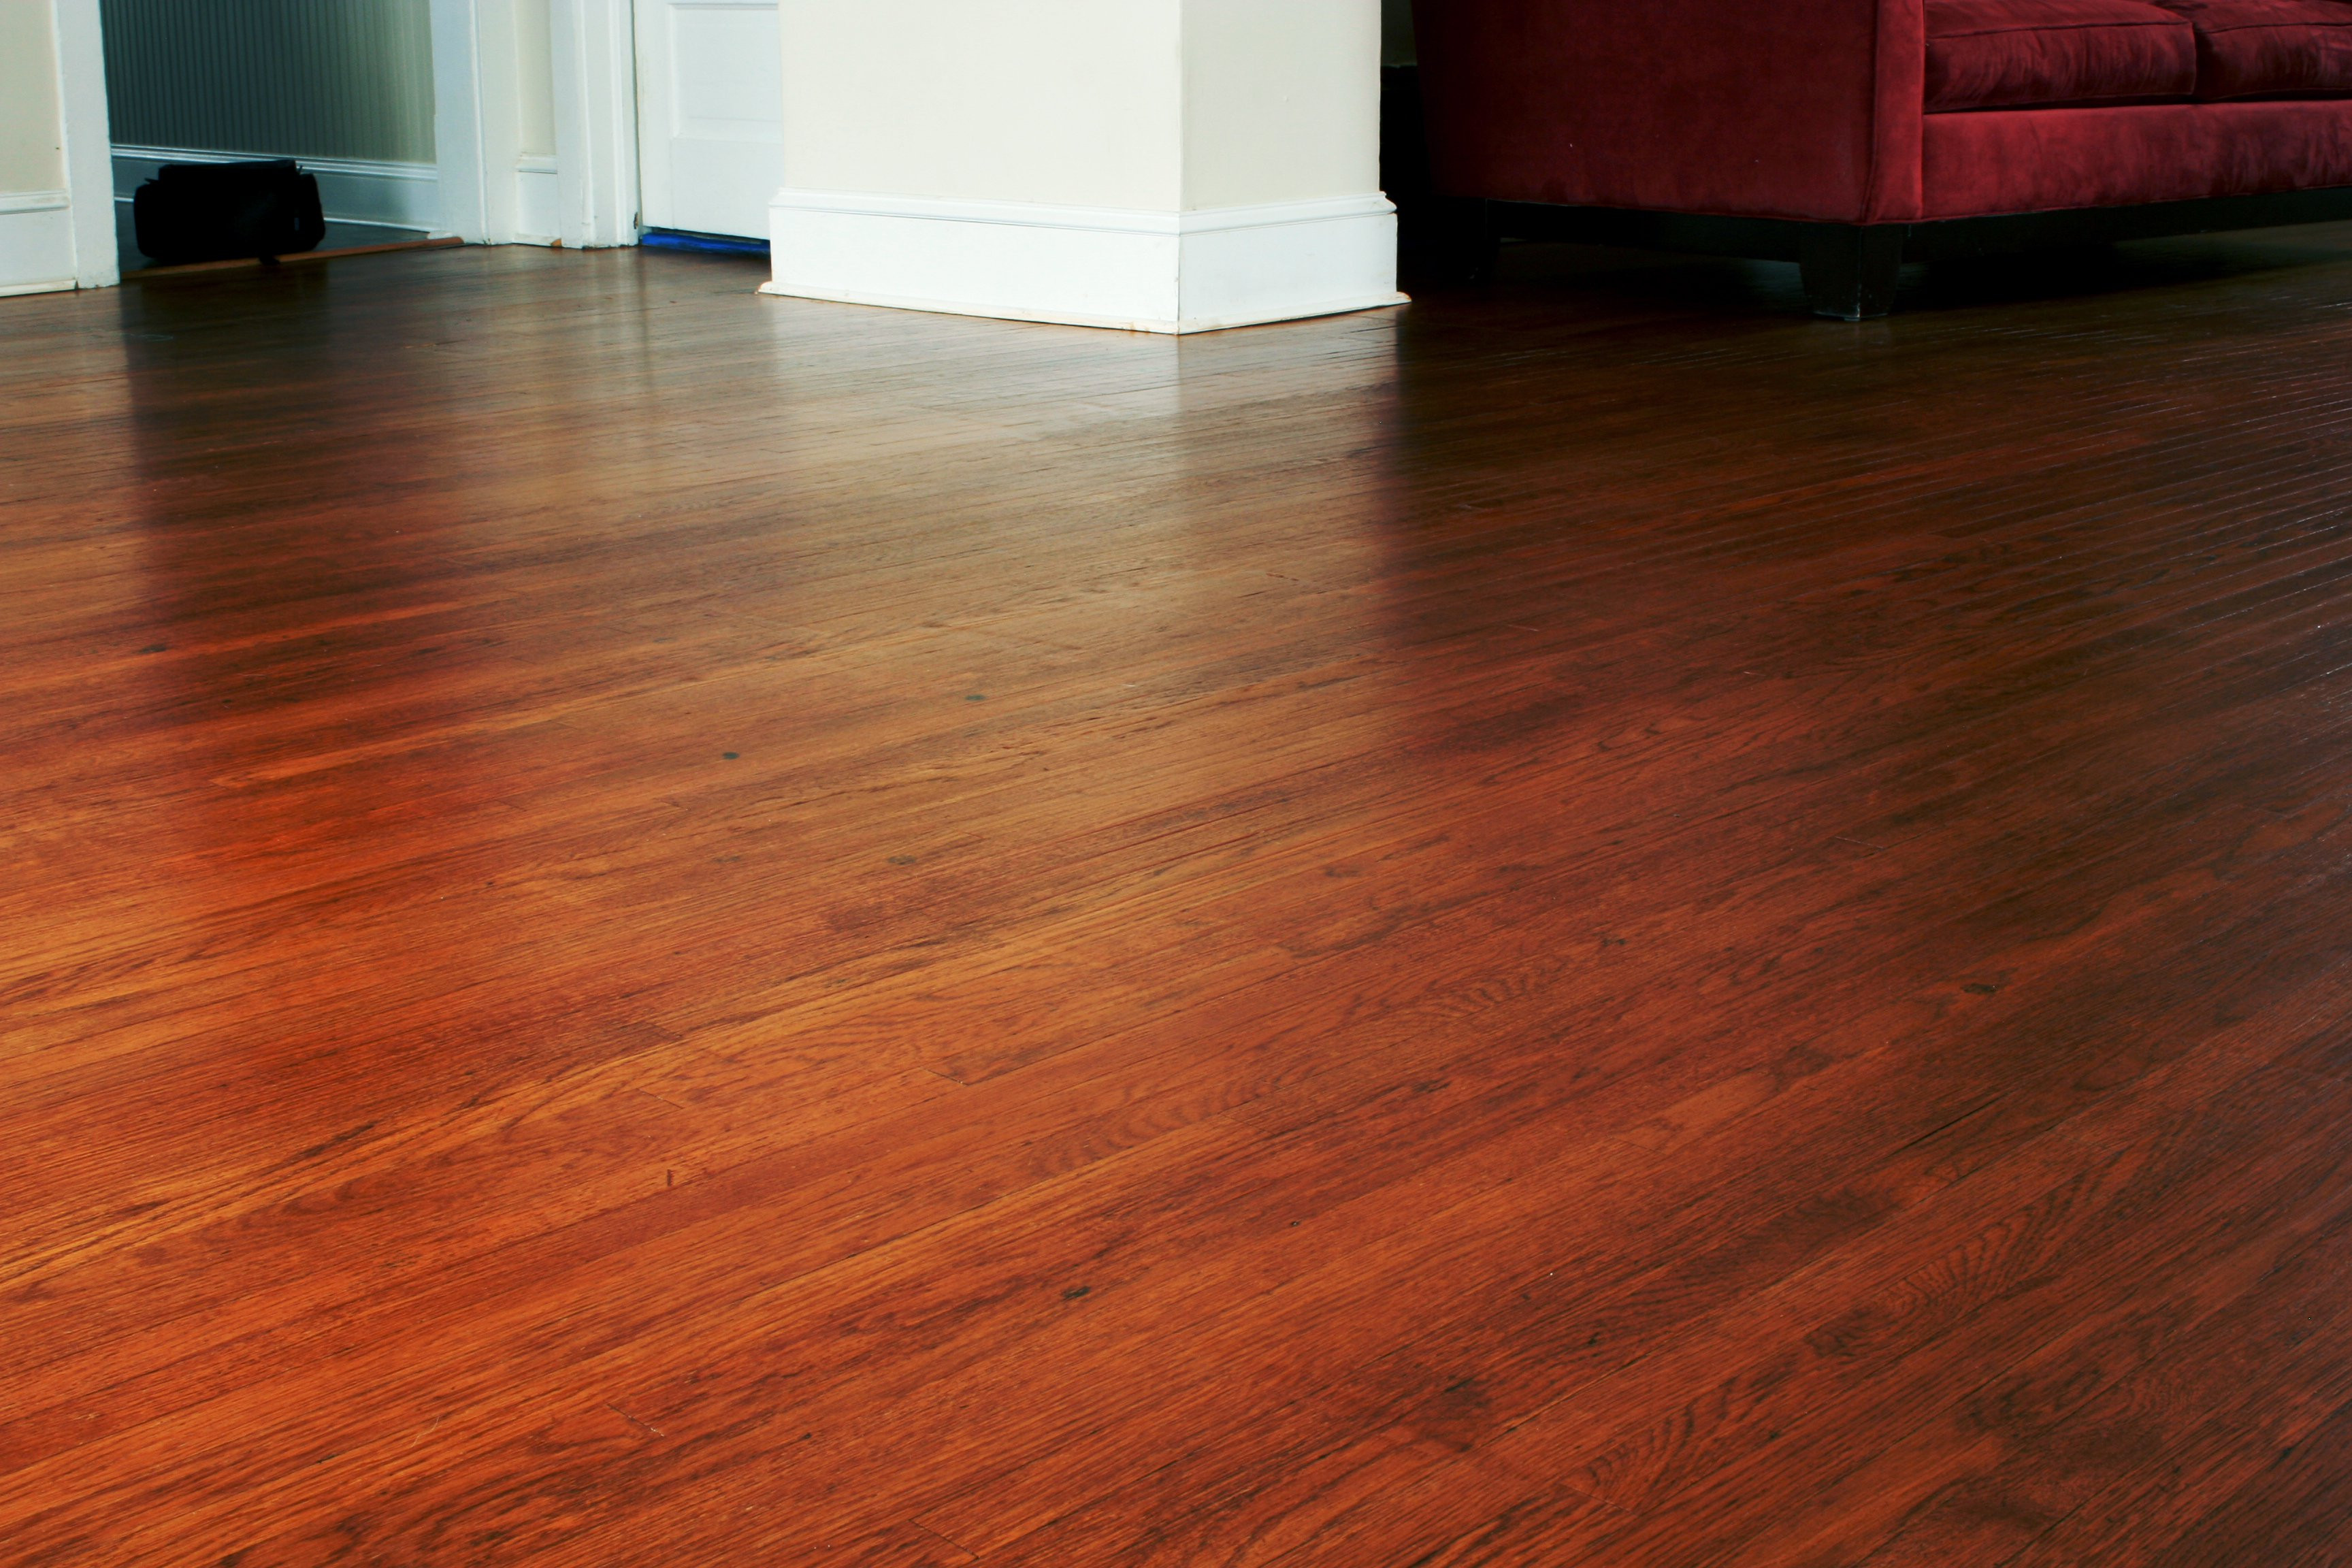 how to refinish maple hardwood floors of how much to refinish wood floors refinish done in portland oregon throughout how much to refinish wood floors how to diagnose and repair sloping floors homeadvisor